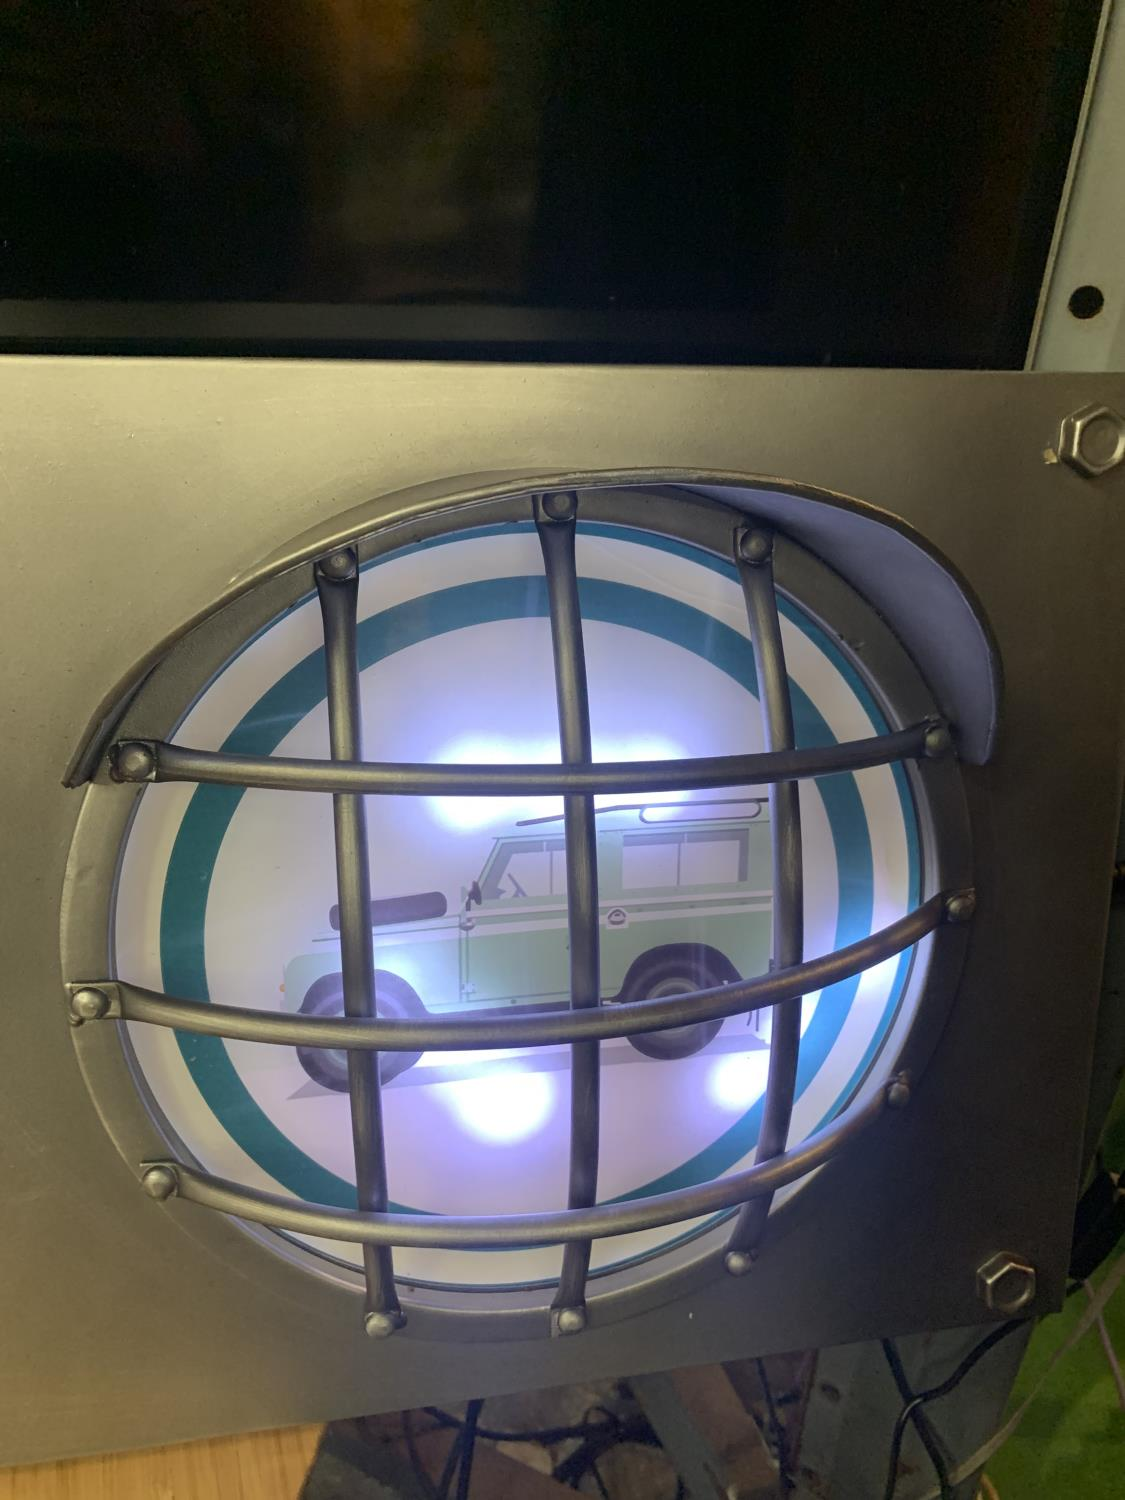 A LARGE LAND ROVER ILLUMINATED TRAFFIC LIGHT STYLE SIGN WITH HEADLIGHT DESIGN - Image 4 of 5